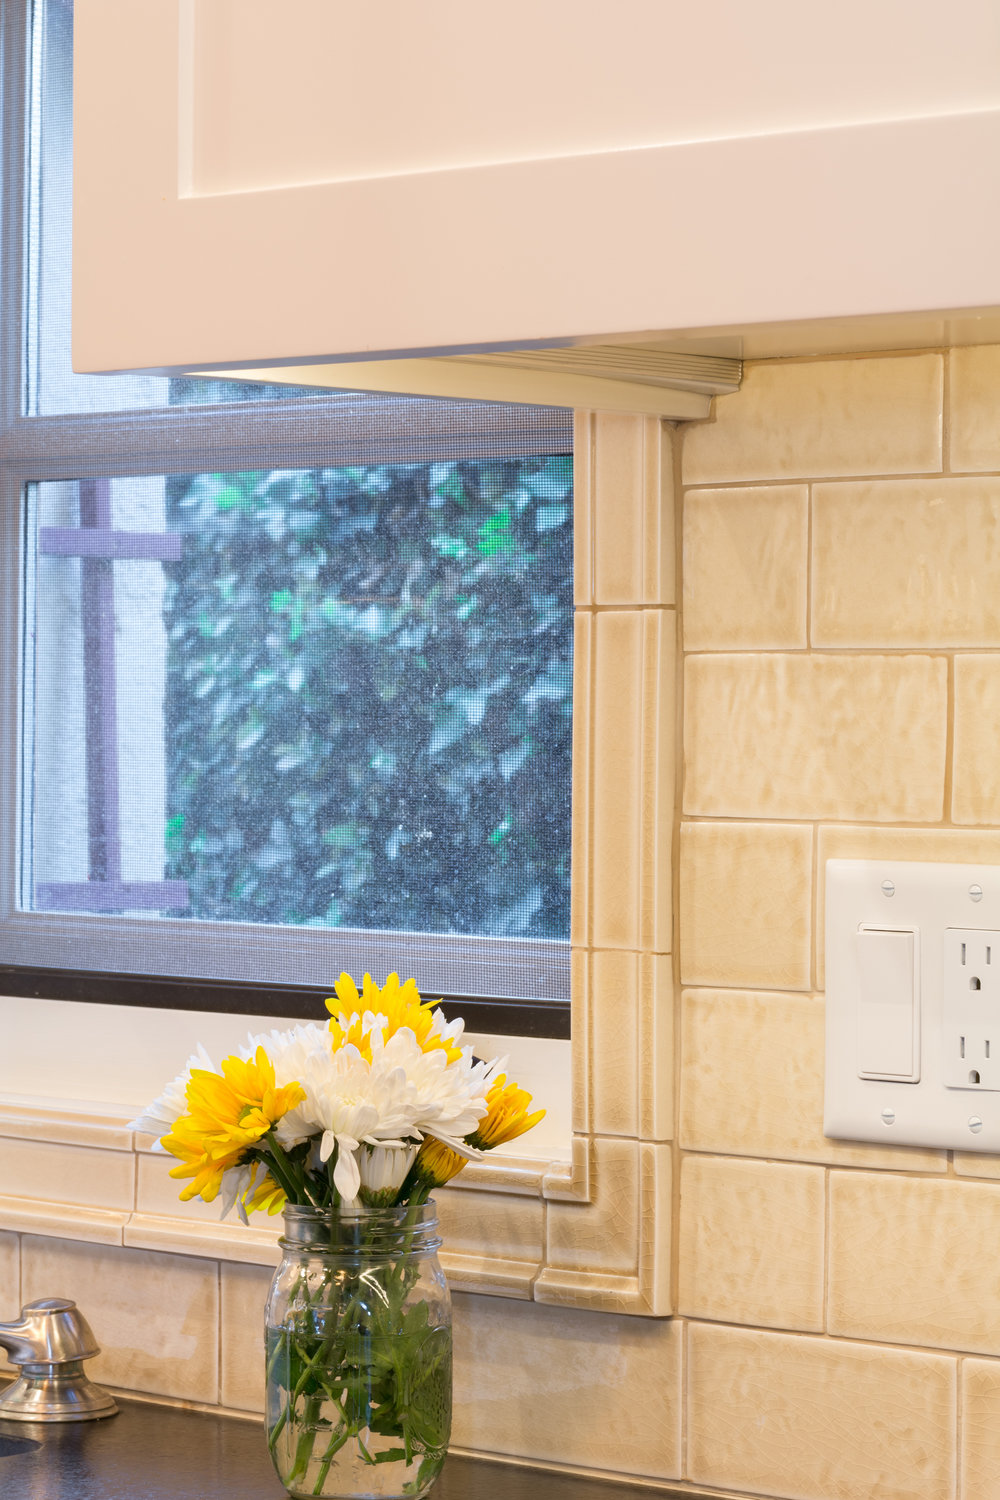 Tile backsplash and window frame